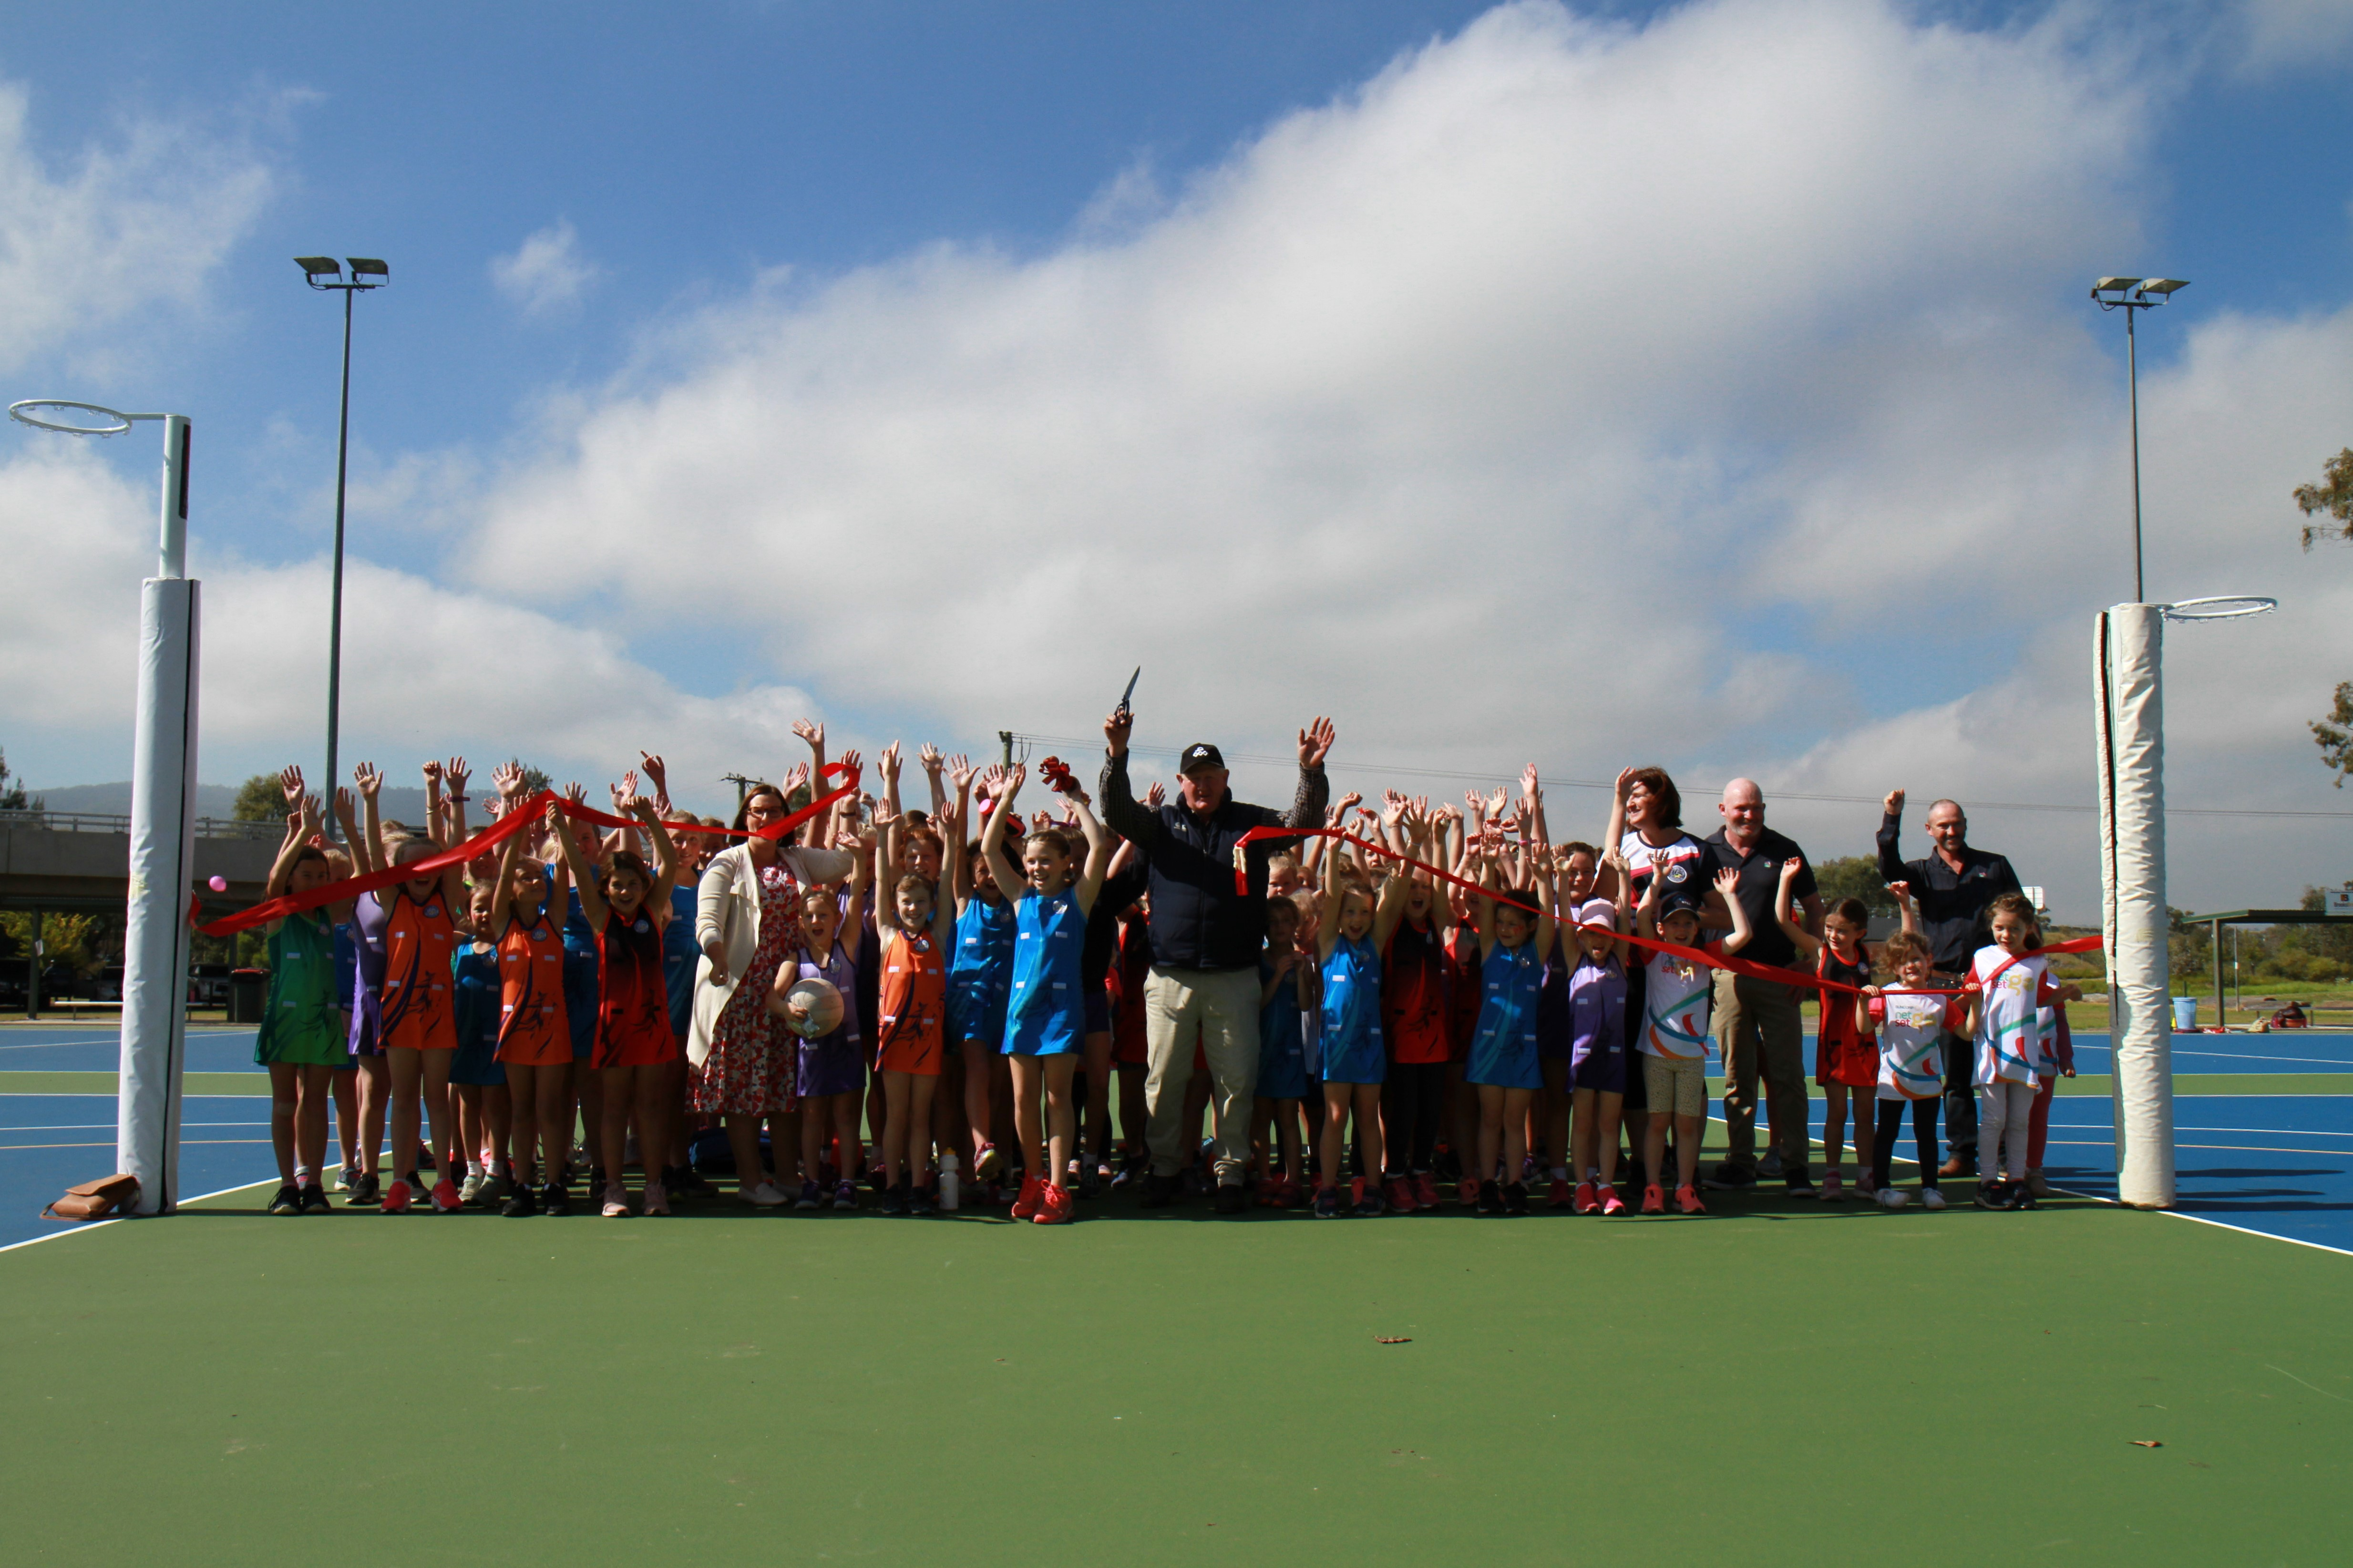 New Courts Opened Ahead of Moher's Day Weekend